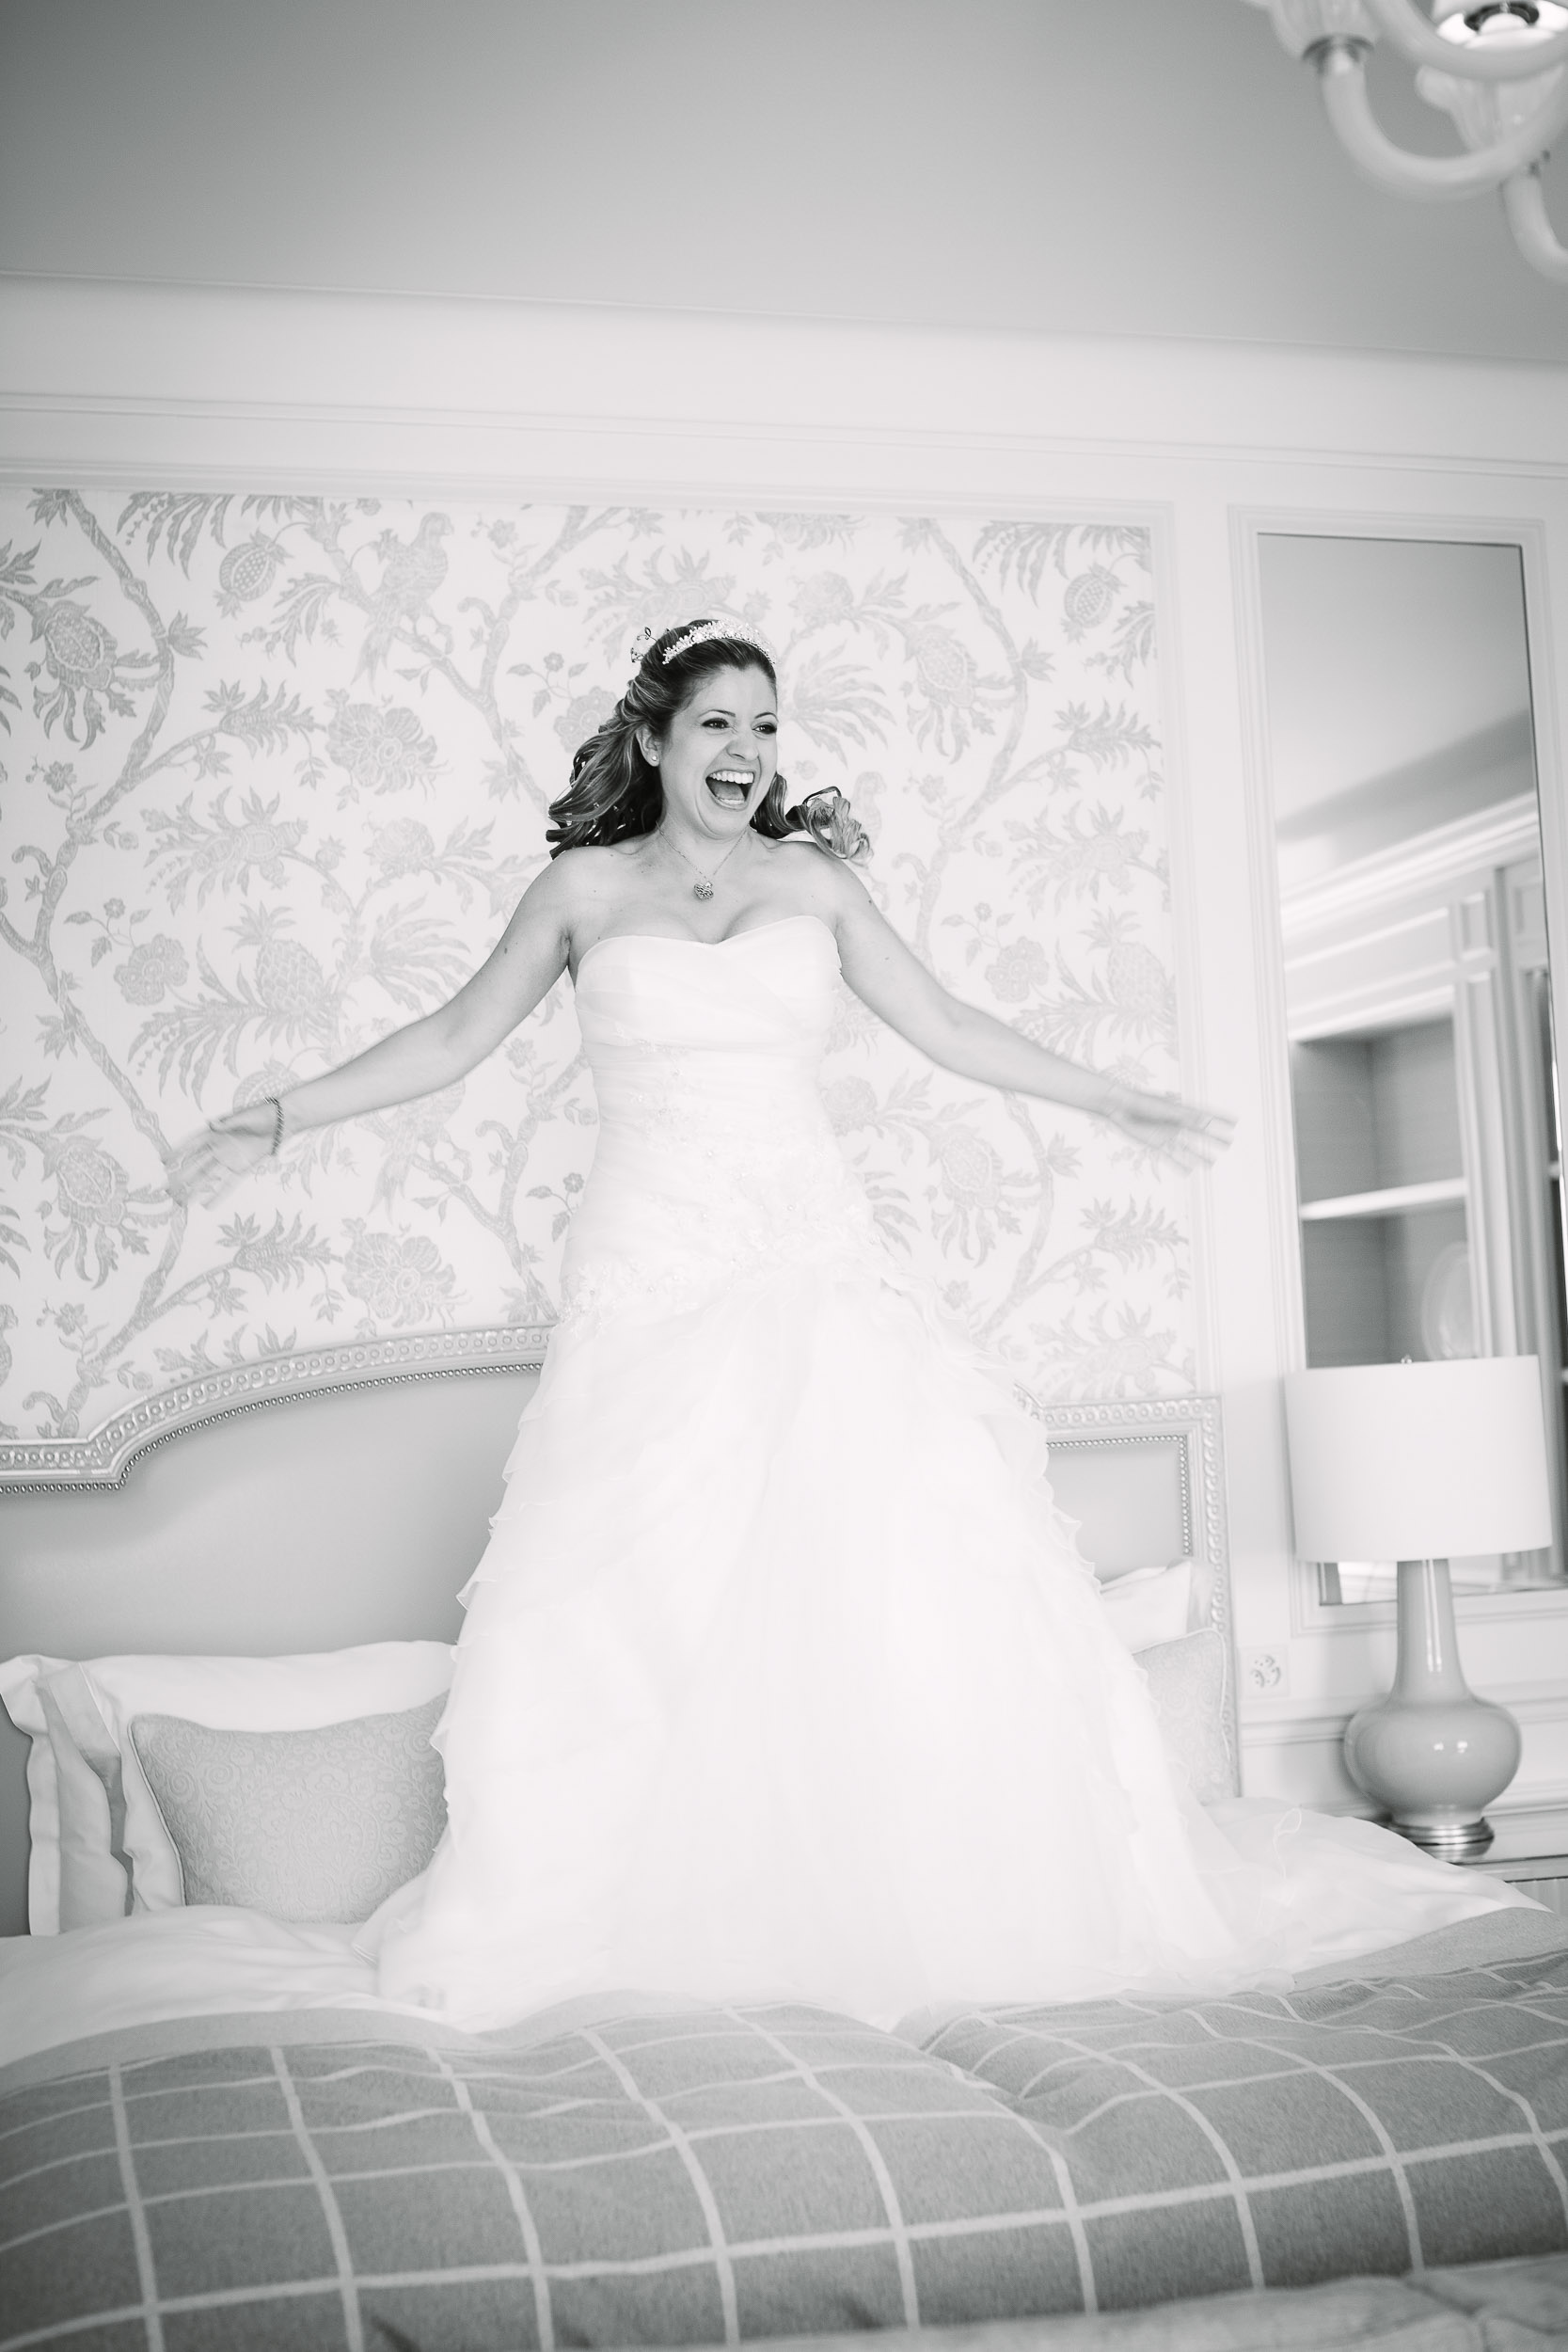 Wedding preparation photo bride jumping on bed